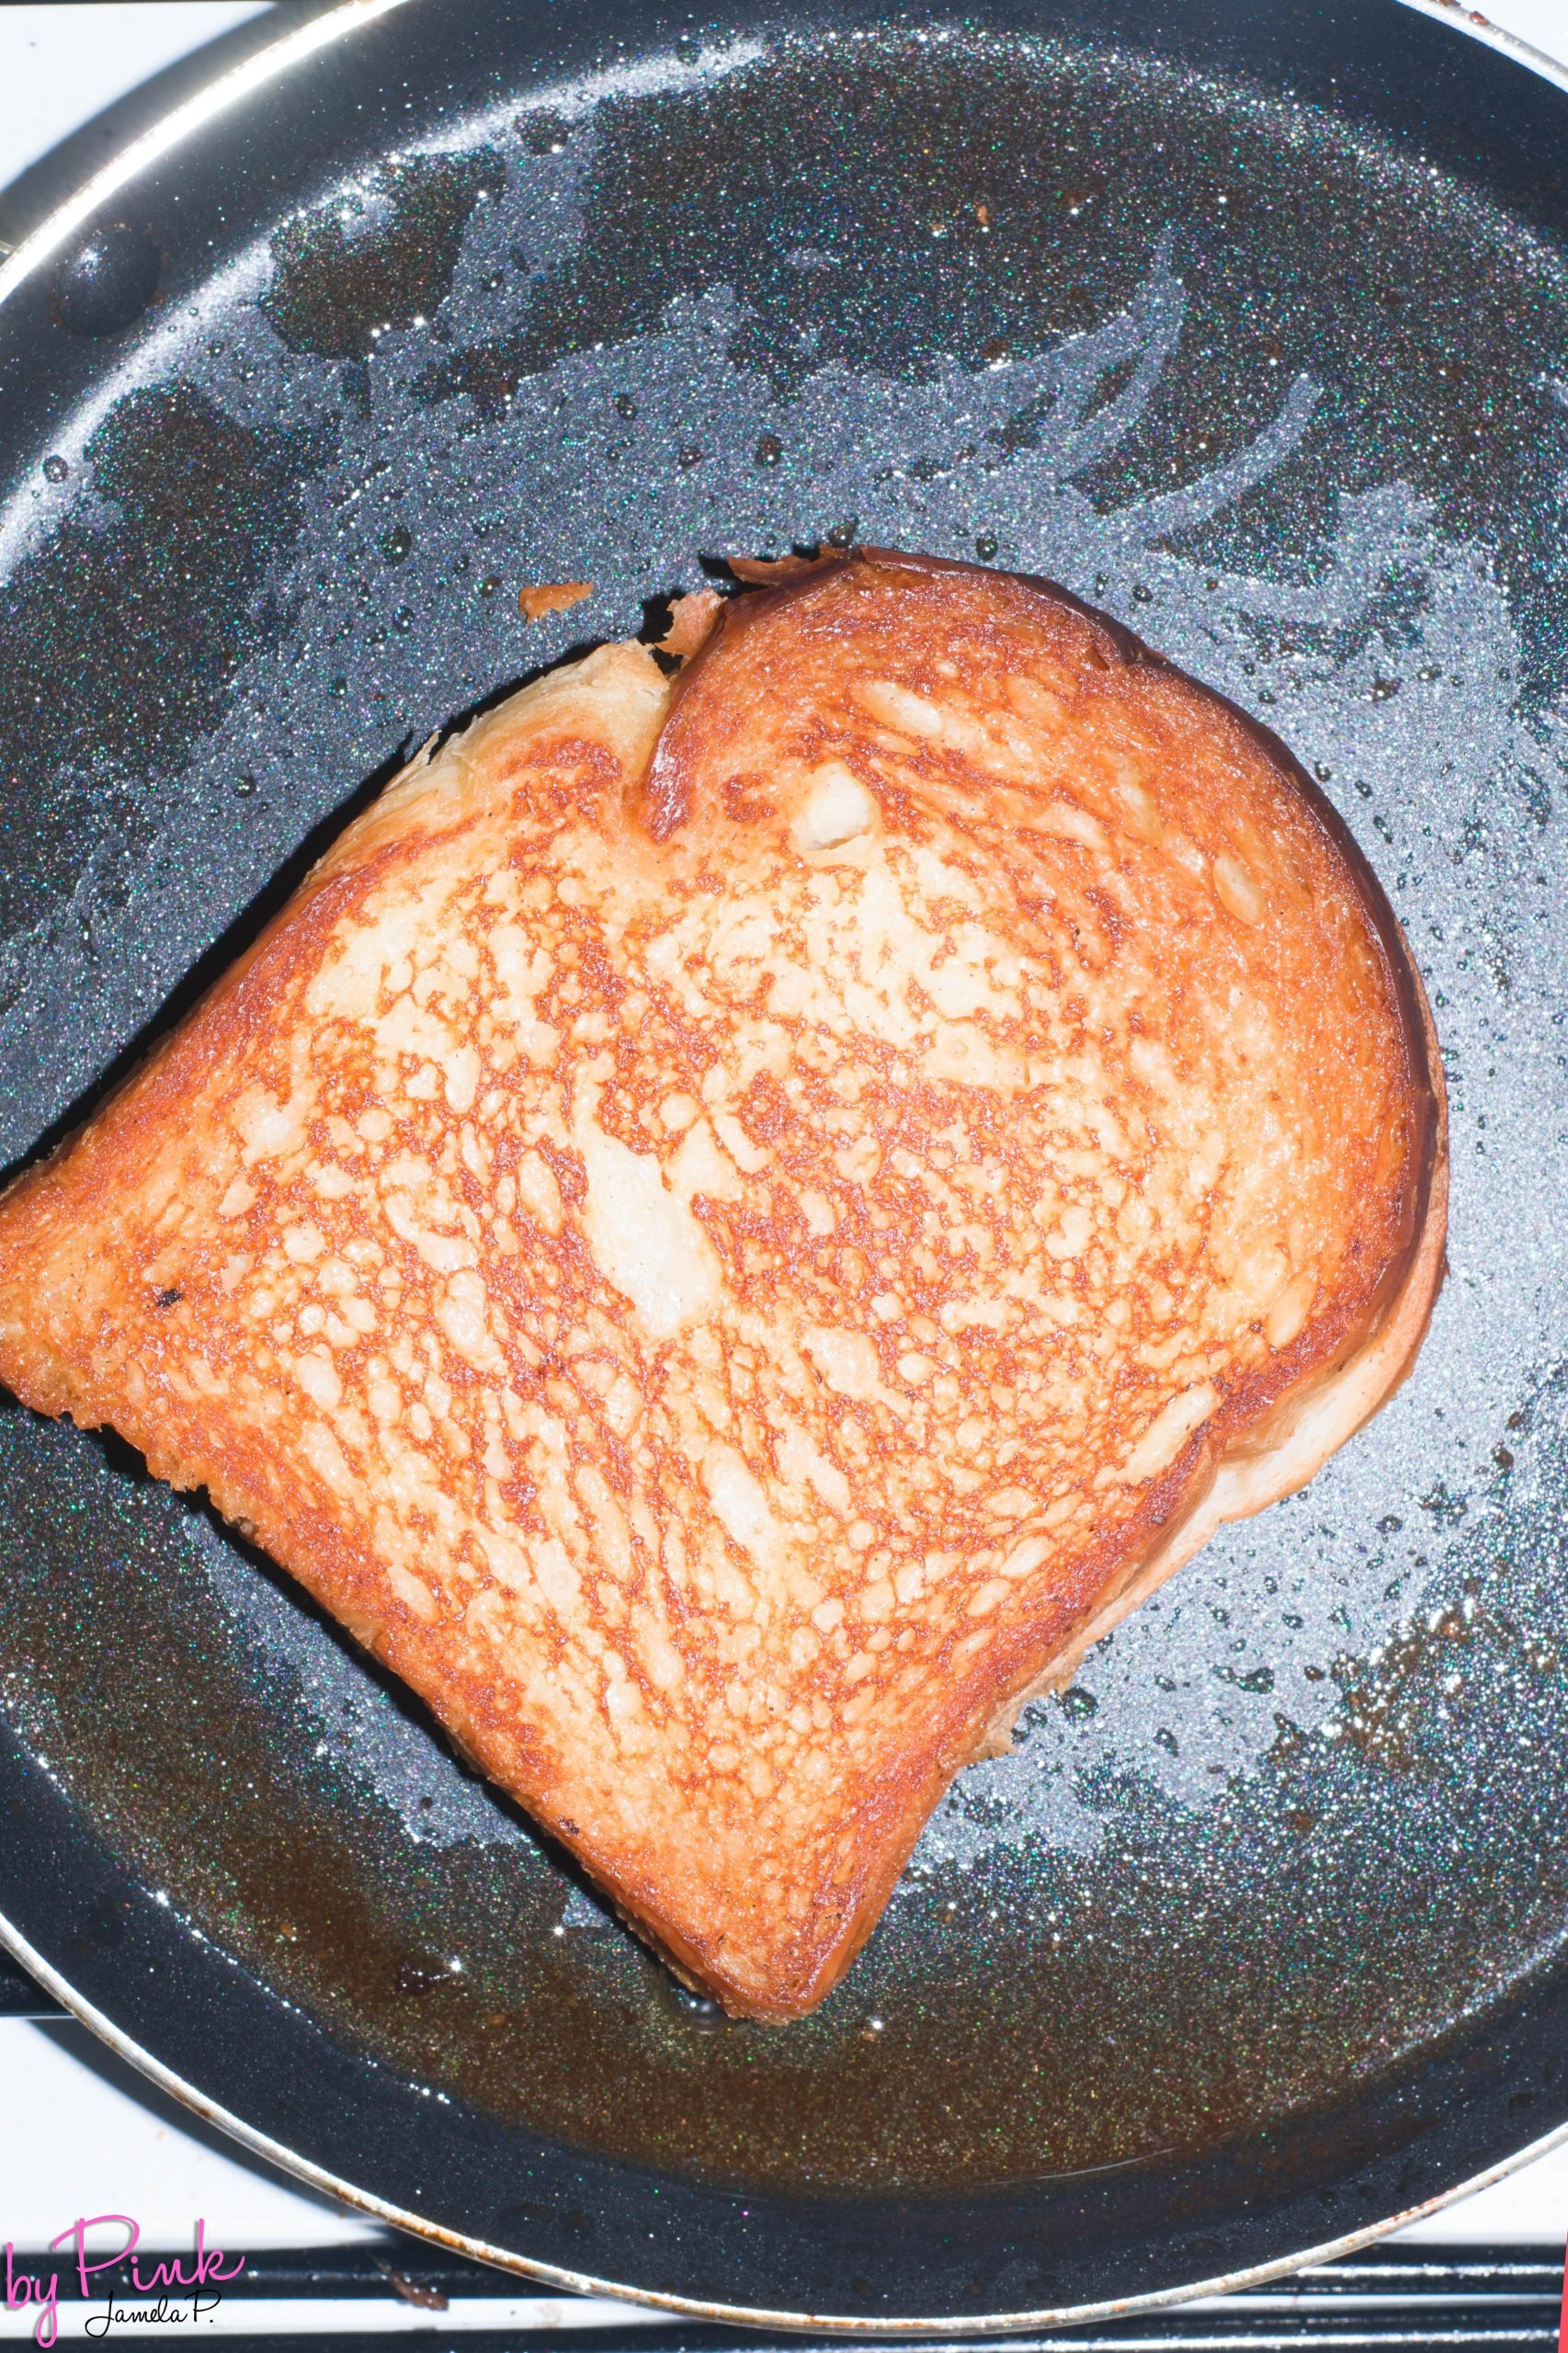 frying french toast in a pan